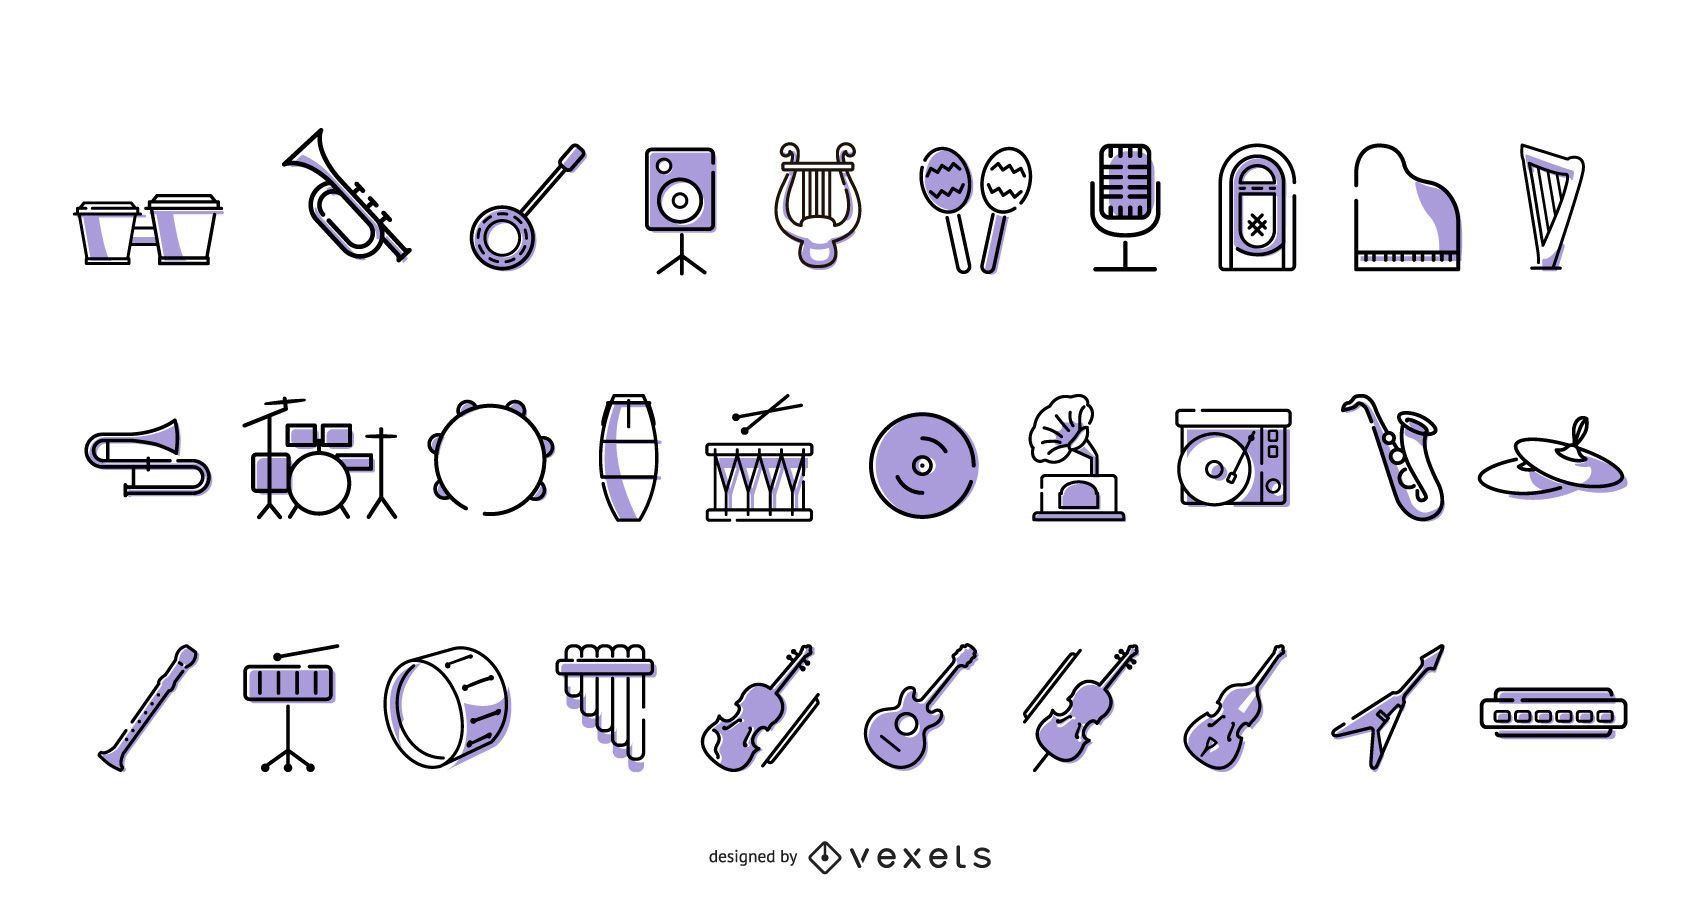 Musical instruments icon collection